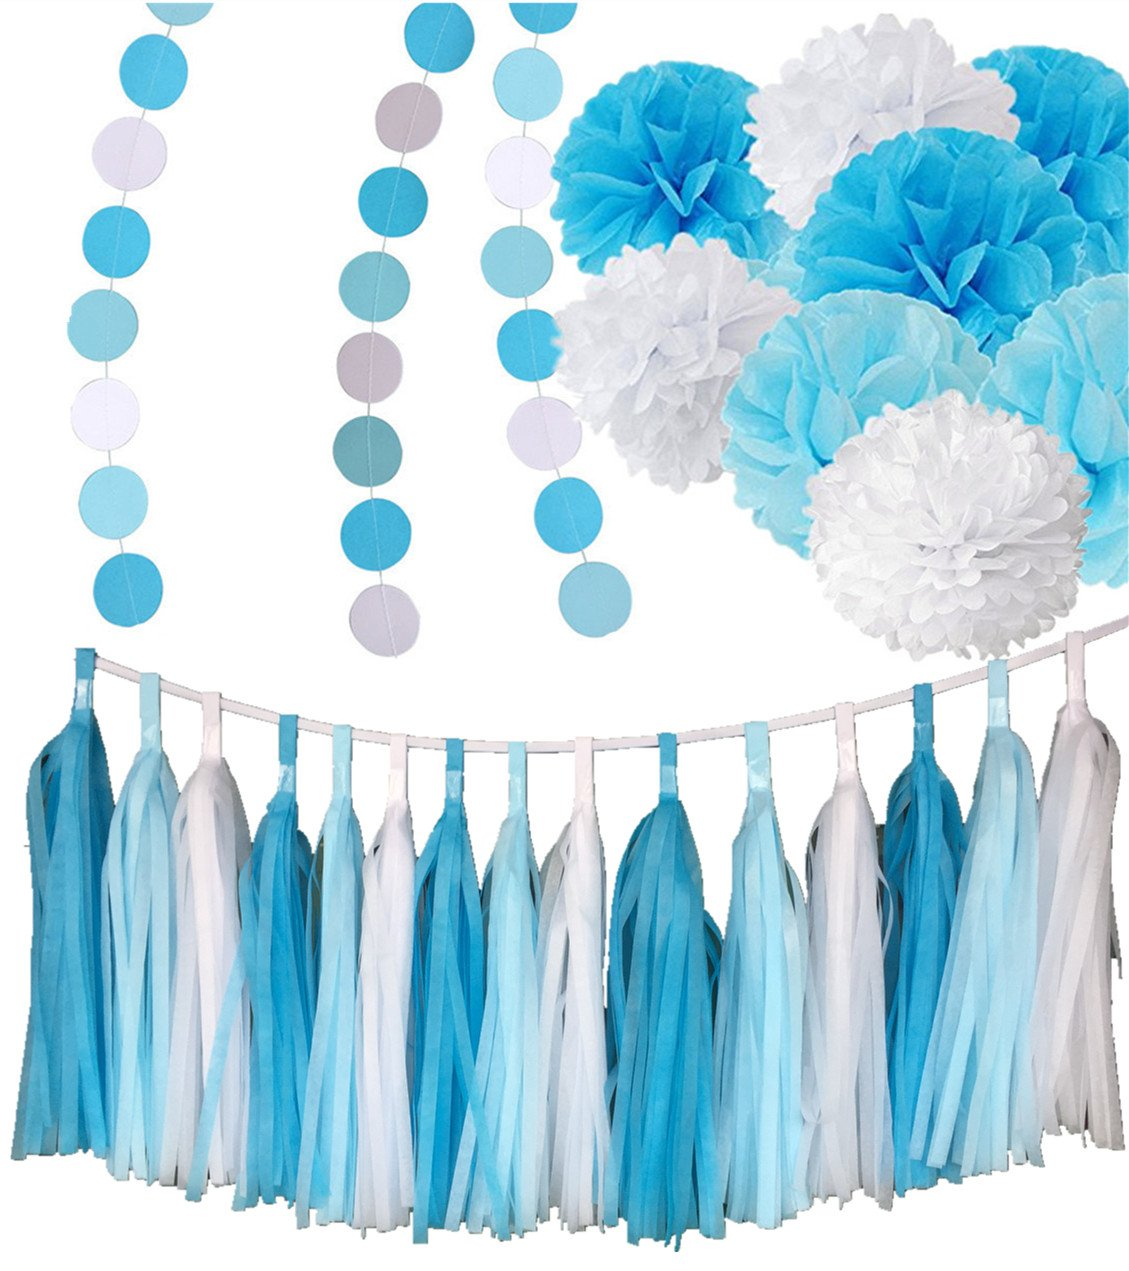 Fonder Mols Frozen Party Supplies 26pcs - White Blue Tissue Paper Pom Poms Tassels Garlands Circle Dots Banner For Blue Birthday Party Baby Shower Decorations